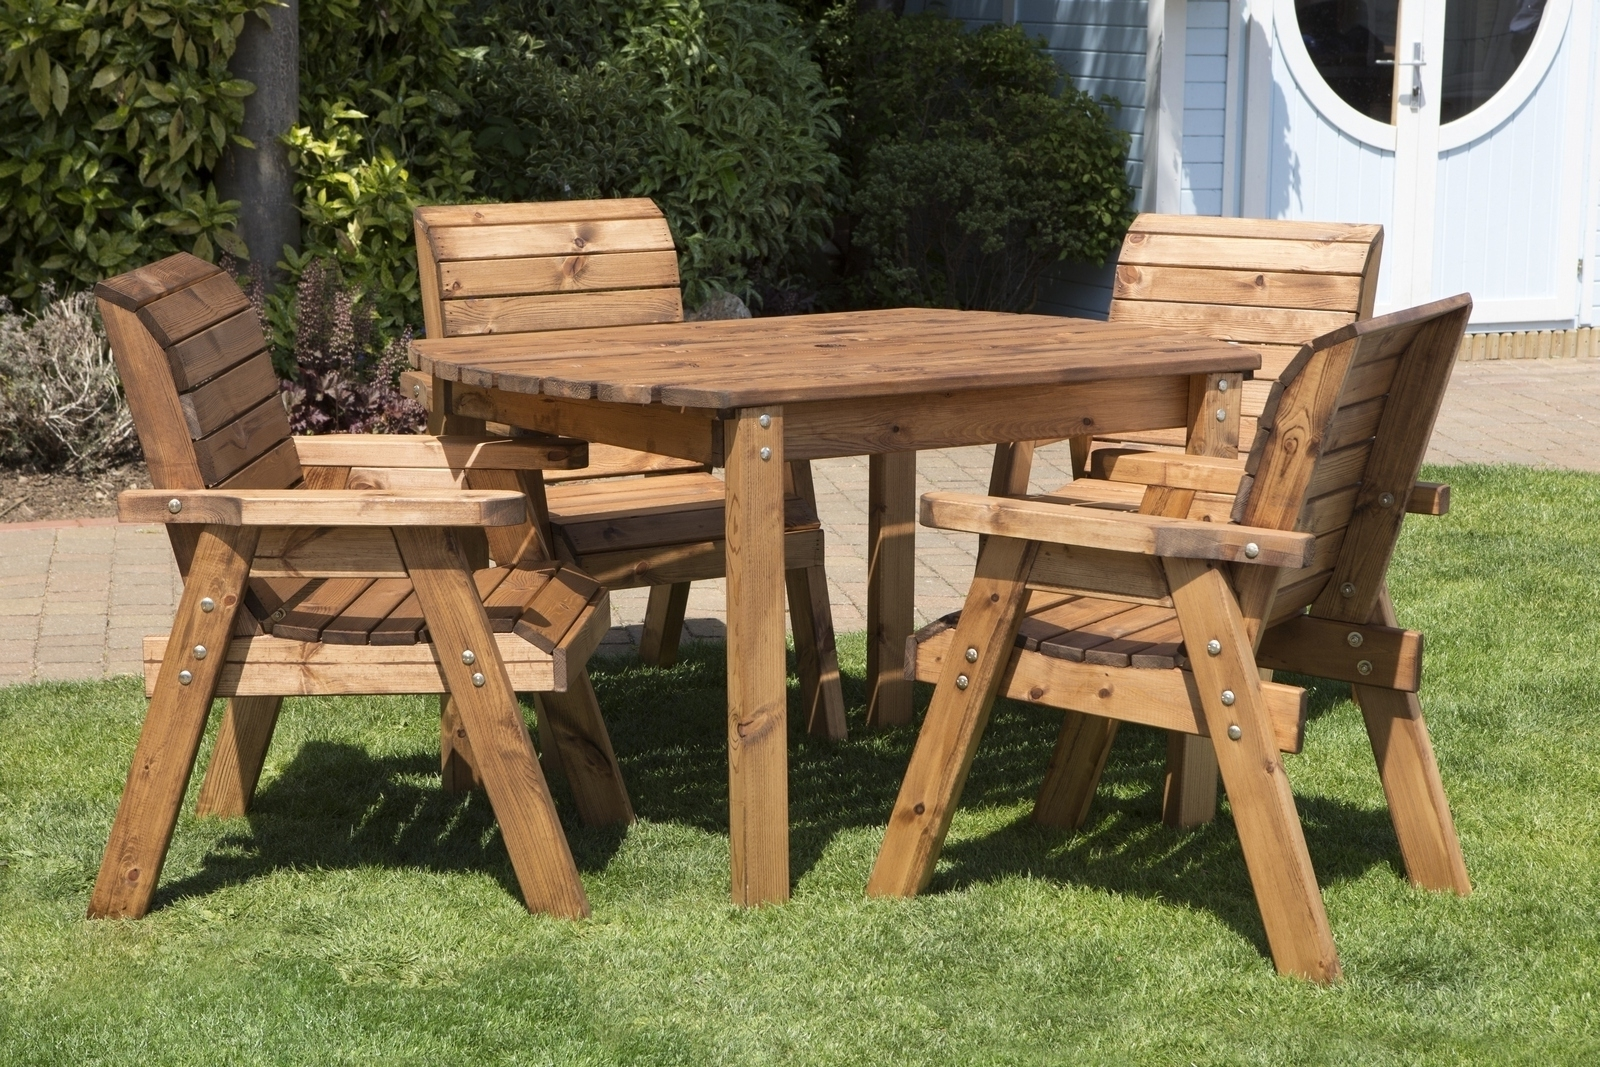 Uk Made Fully Assembled Heavy Duty Wooden Patio Garden Dining Set throughout 2017 Garden Dining Tables